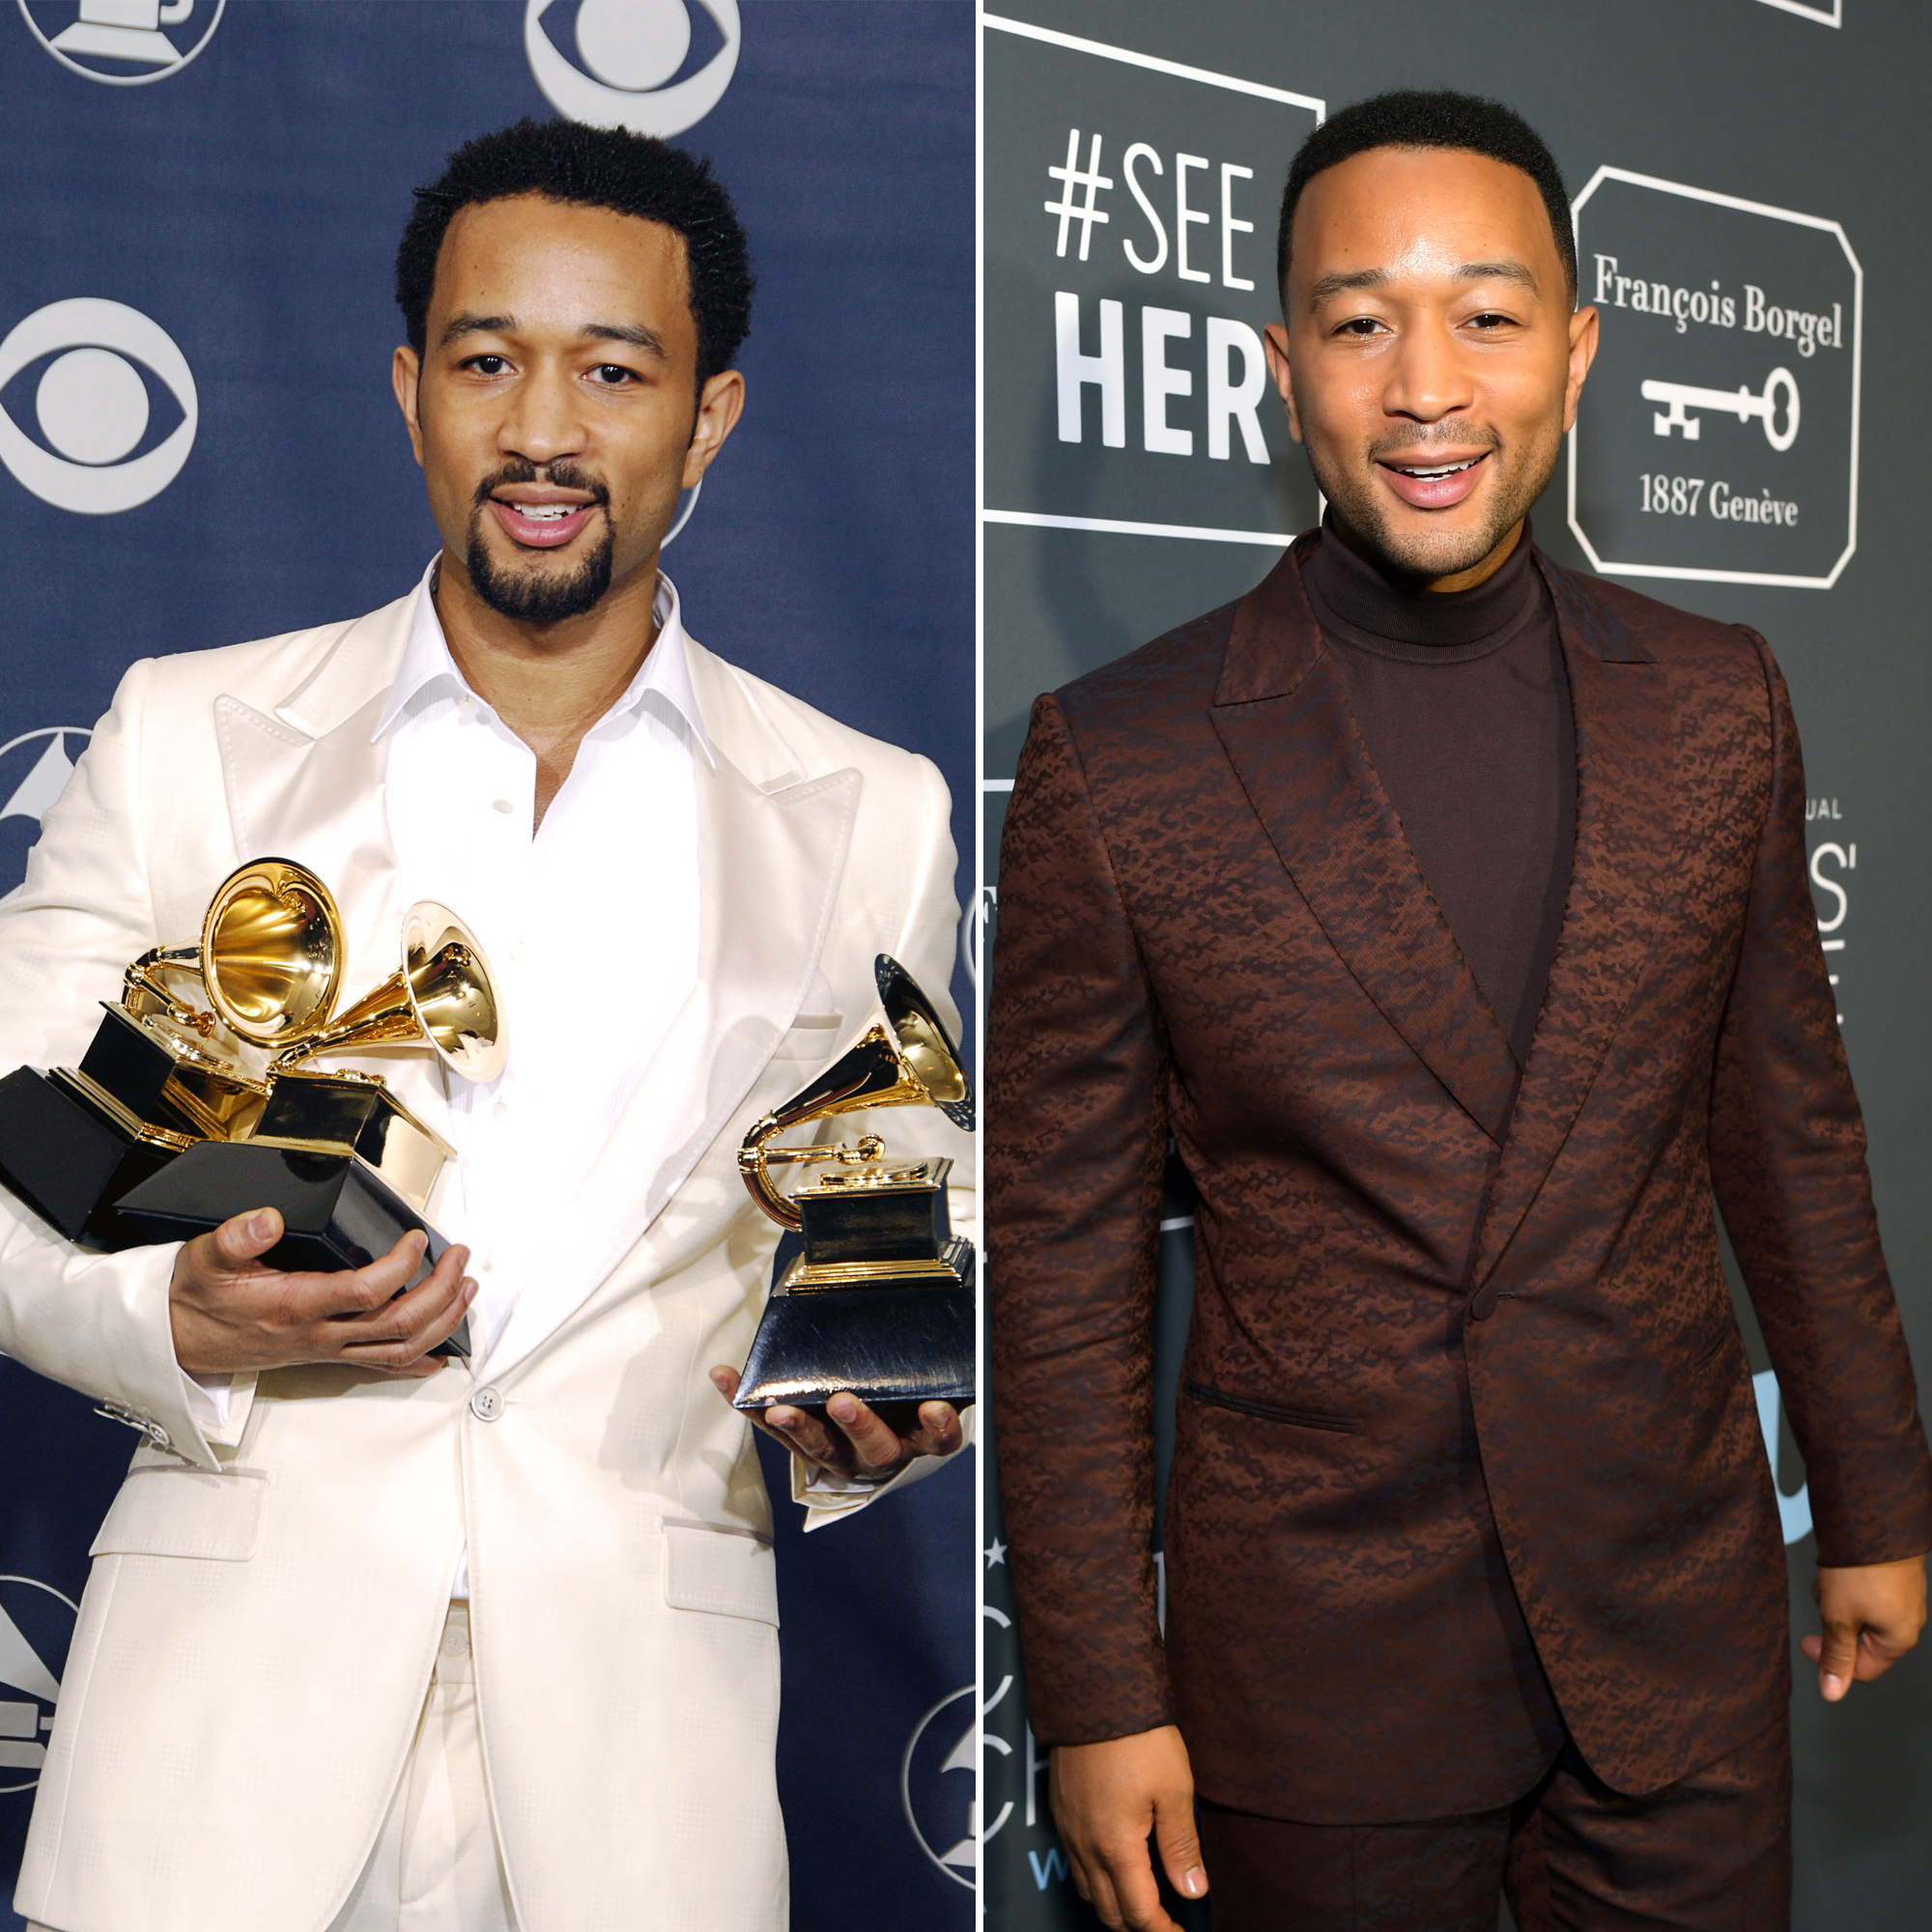 Best New Artist Grammy Winners Where Are They Now - Who He Beat: Ciara, Fall Out Boy, Keane, Sugarland Where Is He Now: Legend has released five albums since his Grammy-winning 2004 album, Get Lifted. The singer made history in September 2018 after he became the first African American man to become an EGOT winner, which includes his 10 Grammy awards.